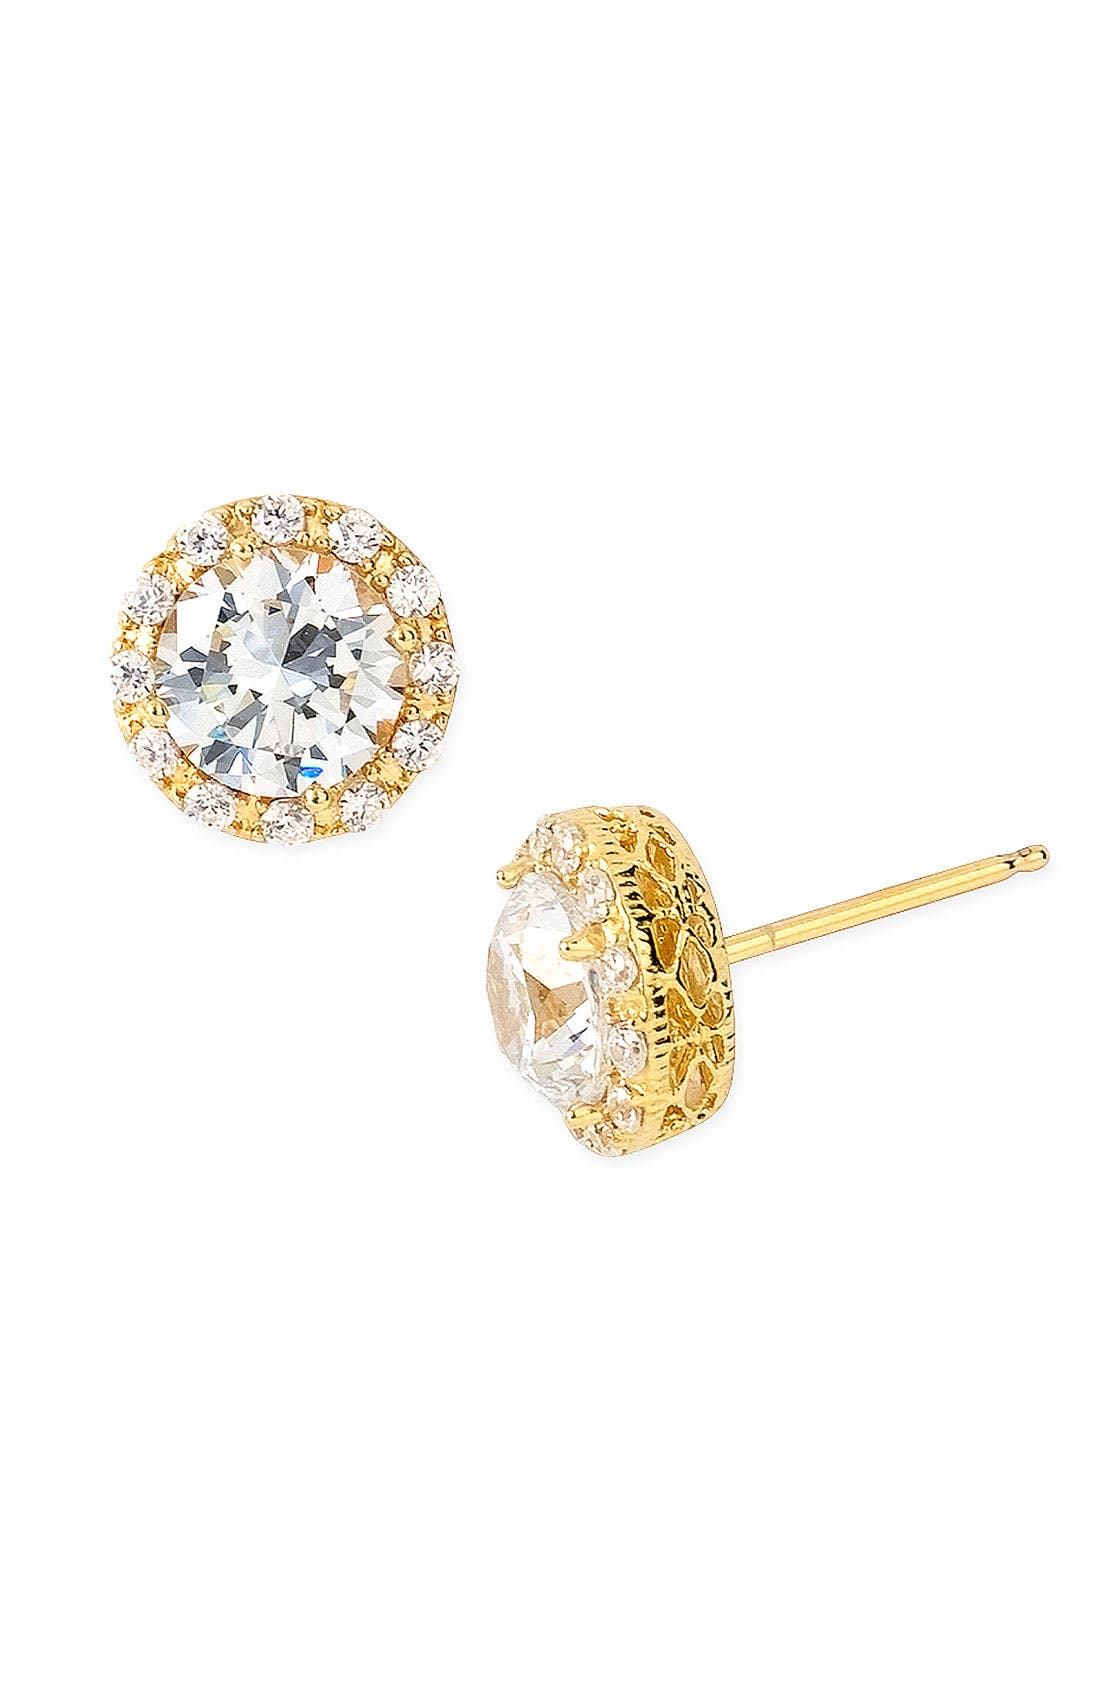 Pavé Round Stud Earrings,                             Alternate thumbnail 7, color,                             GOLD